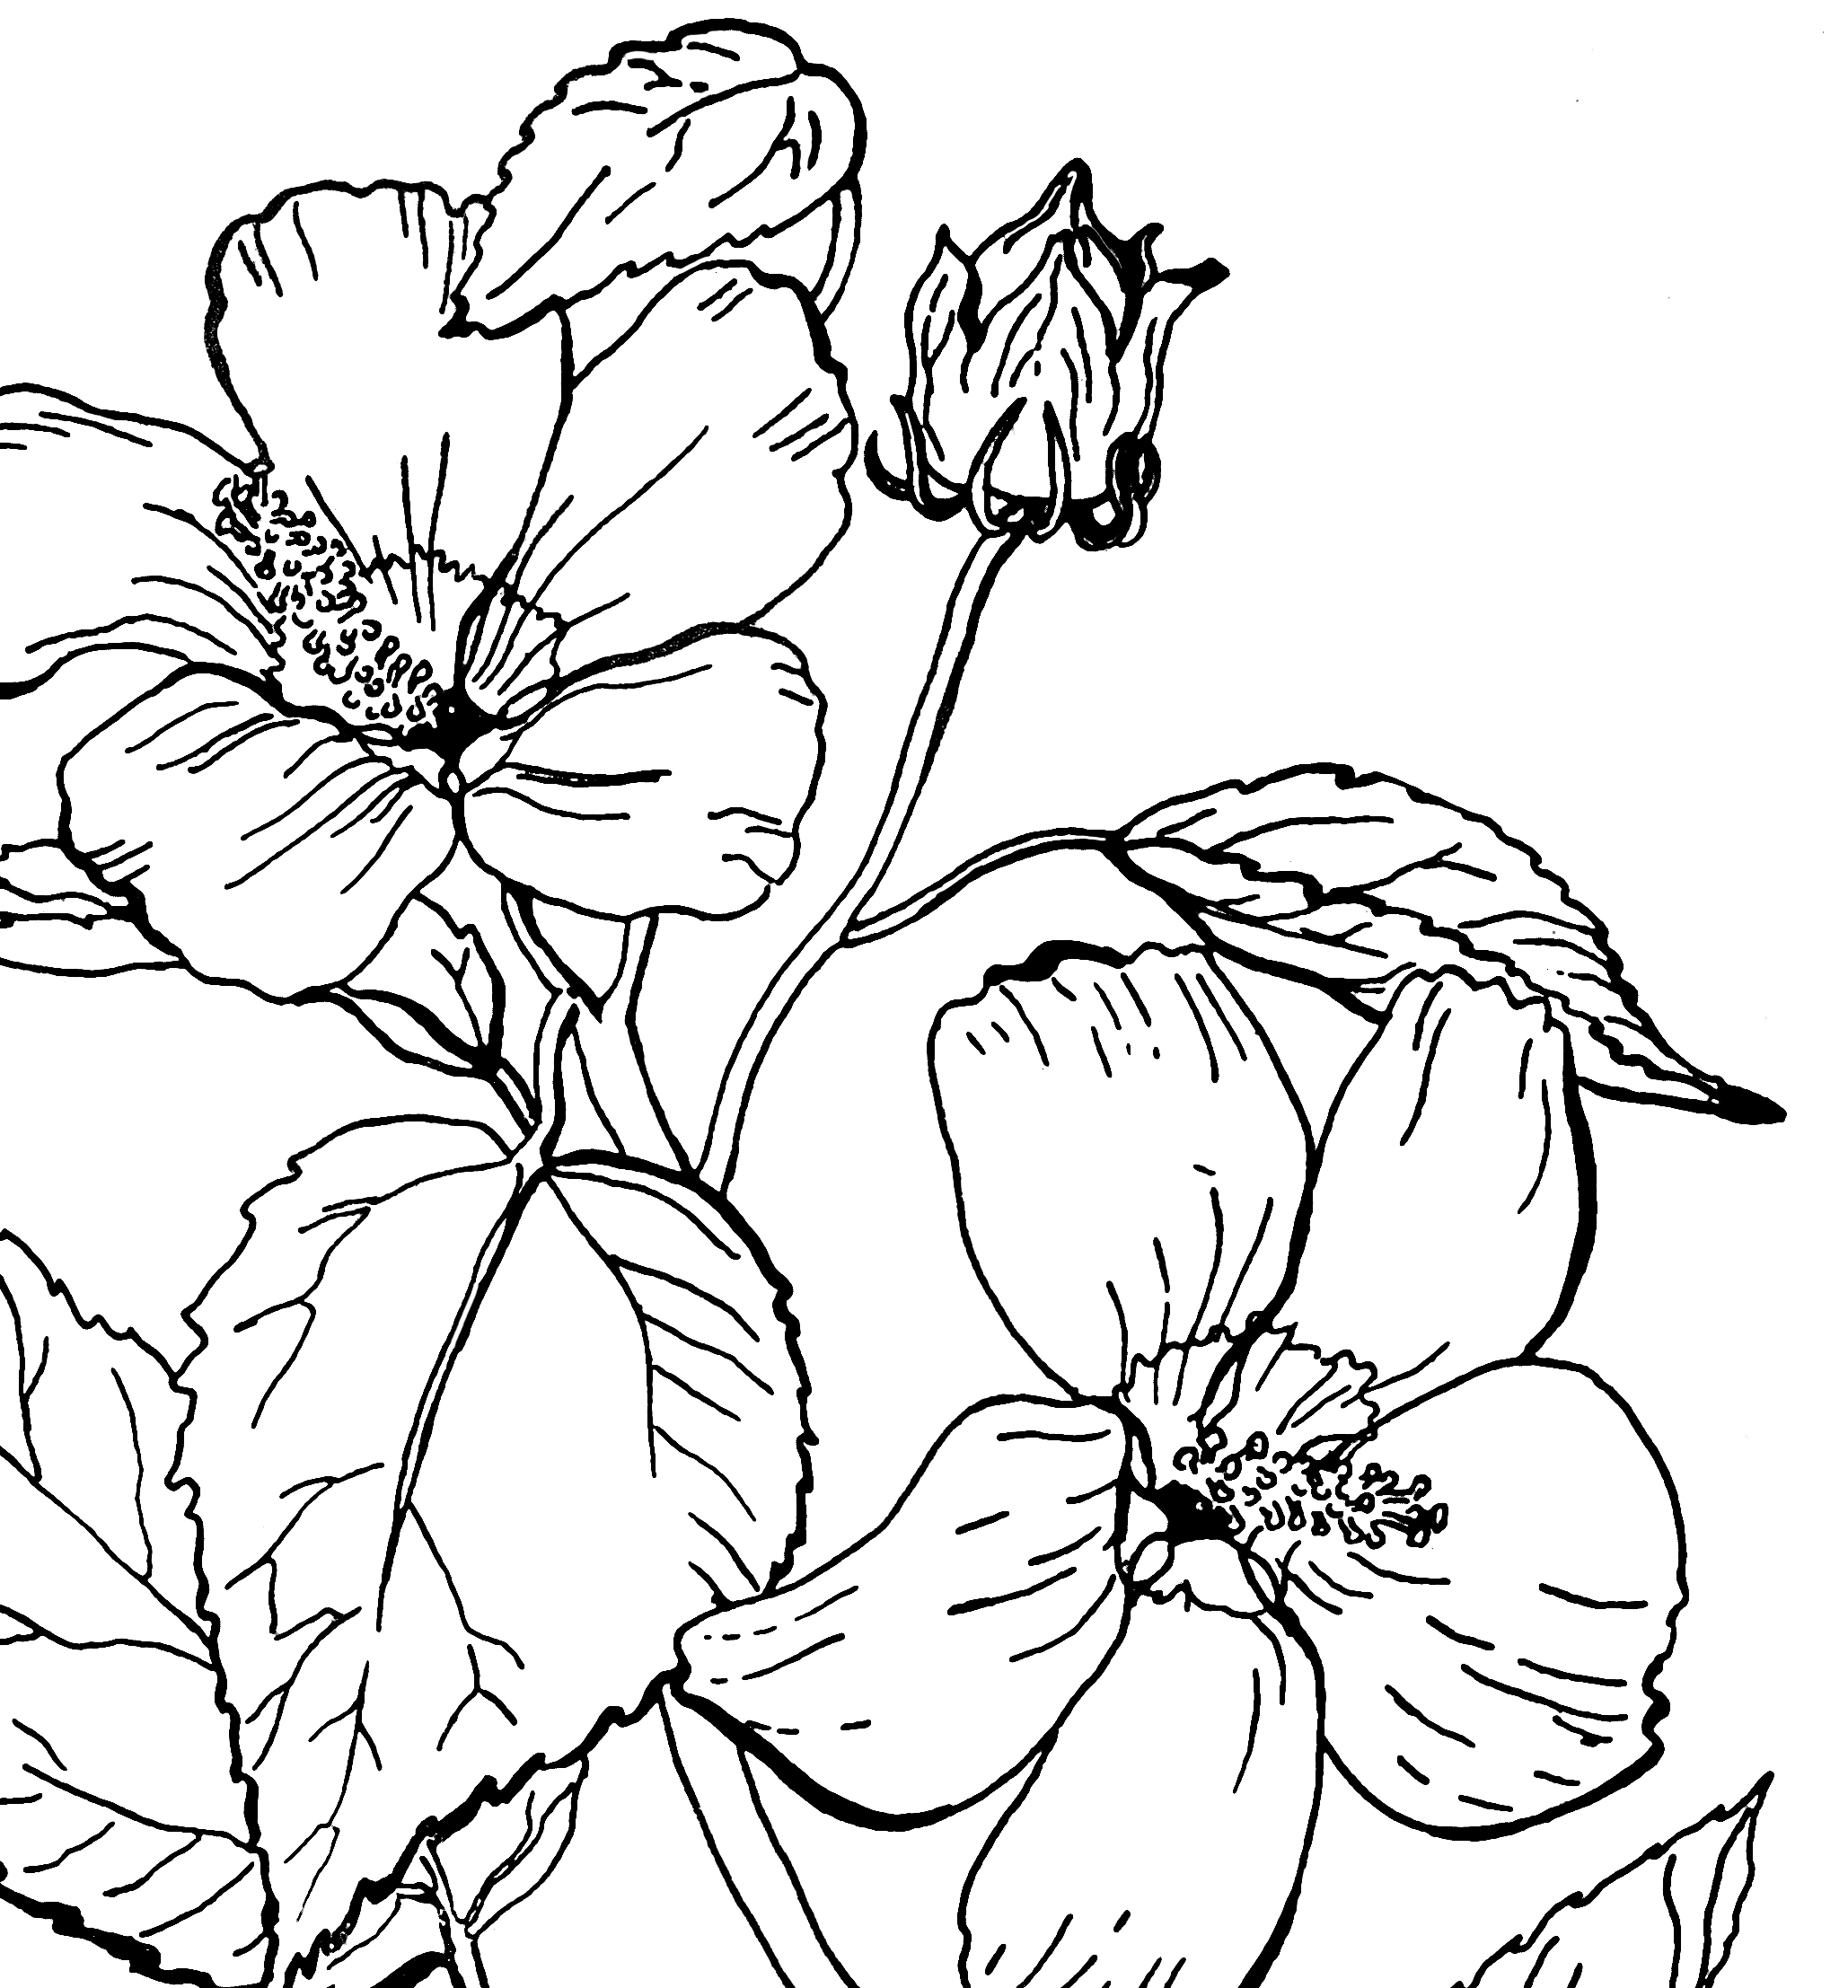 rose for coloring rose color clipart 20 free cliparts download images on rose for coloring